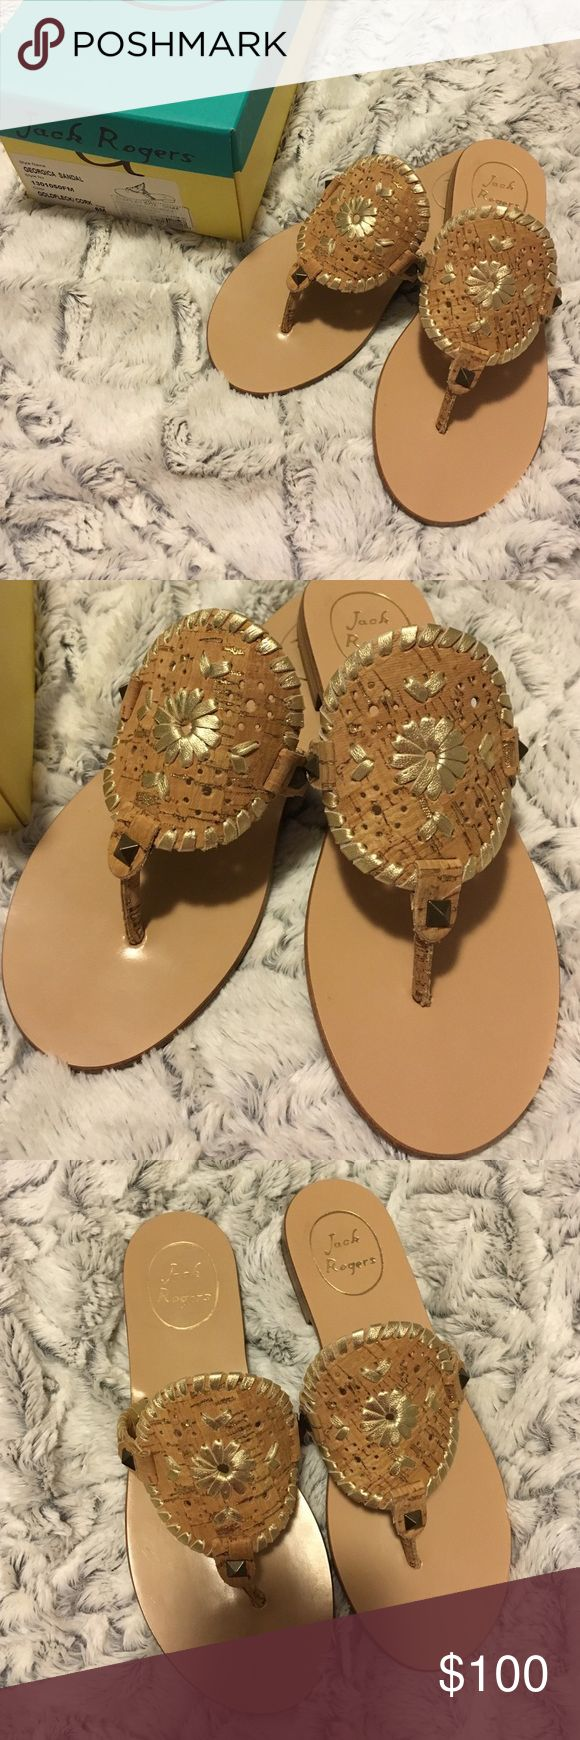 Jack Rogers Cork Sandals Jack Rogers cork/gold fleck Georgica sandals. BRAND NEW in box, absolutely never worn. SO comfortable and go with just about anything. Size 6!  don't pass these up! Jack Rogers Shoes Sandals